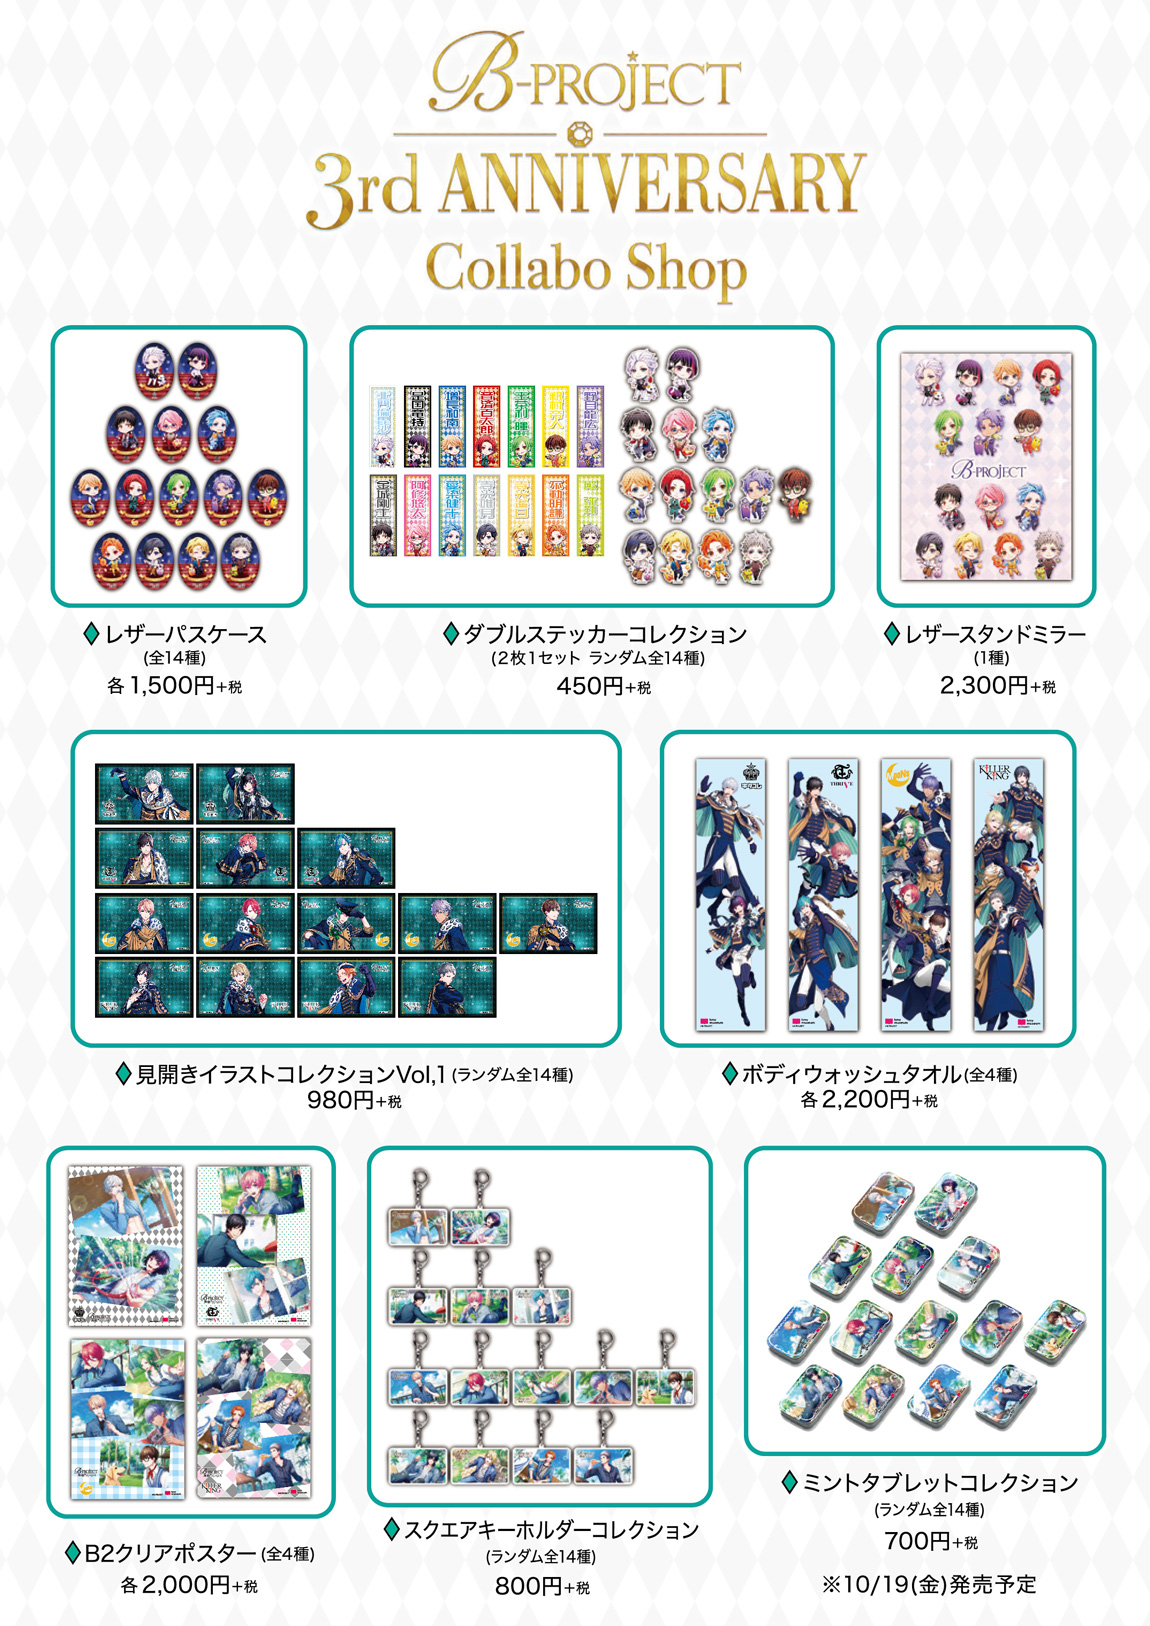 B-PROJECT 3rd Anniversary Collaabo Shop GOODS